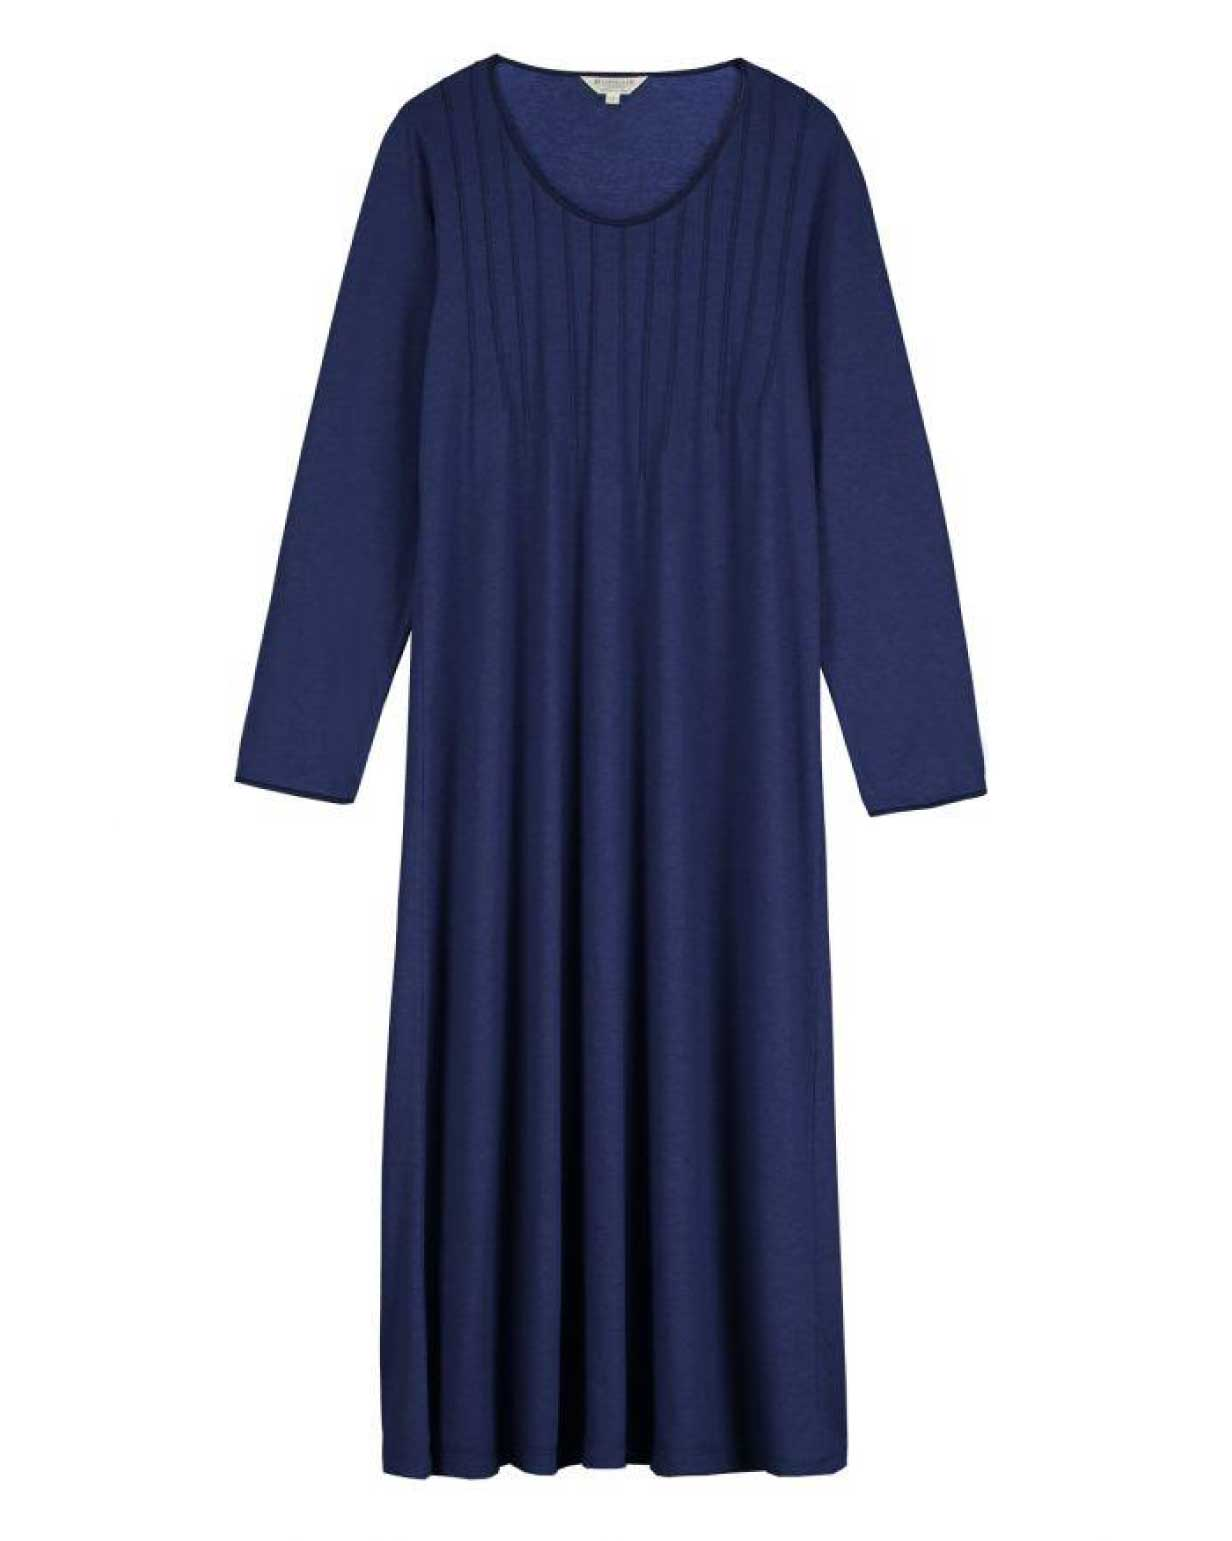 Women's French Pleat Midnight Long Sleeve Nightdress | Bonsoir of London